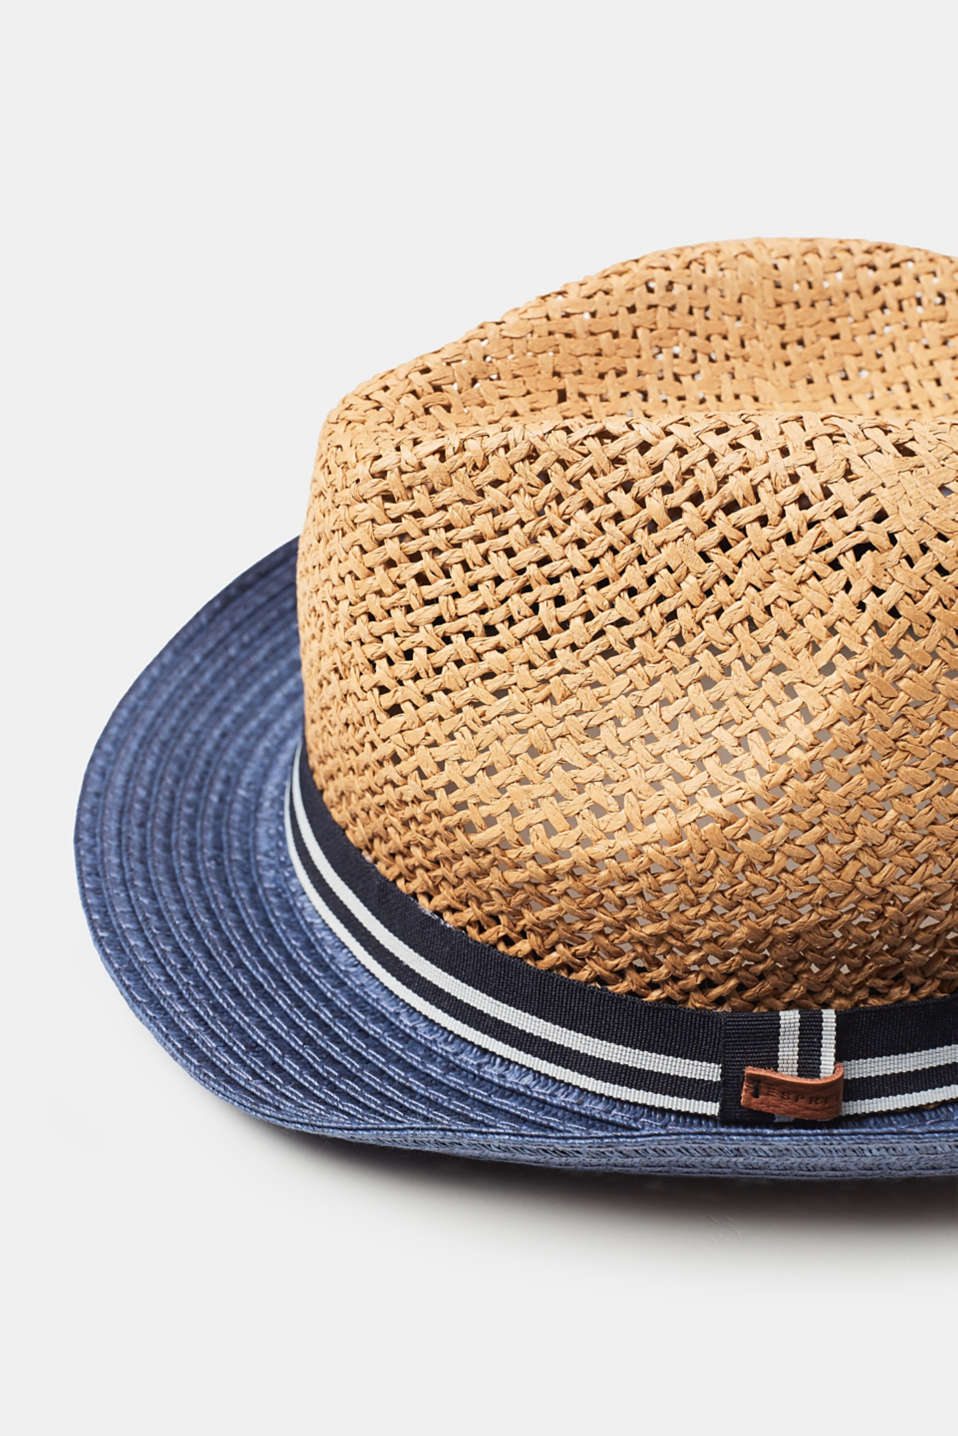 Lightweight trilby hat with colour blocking, straw